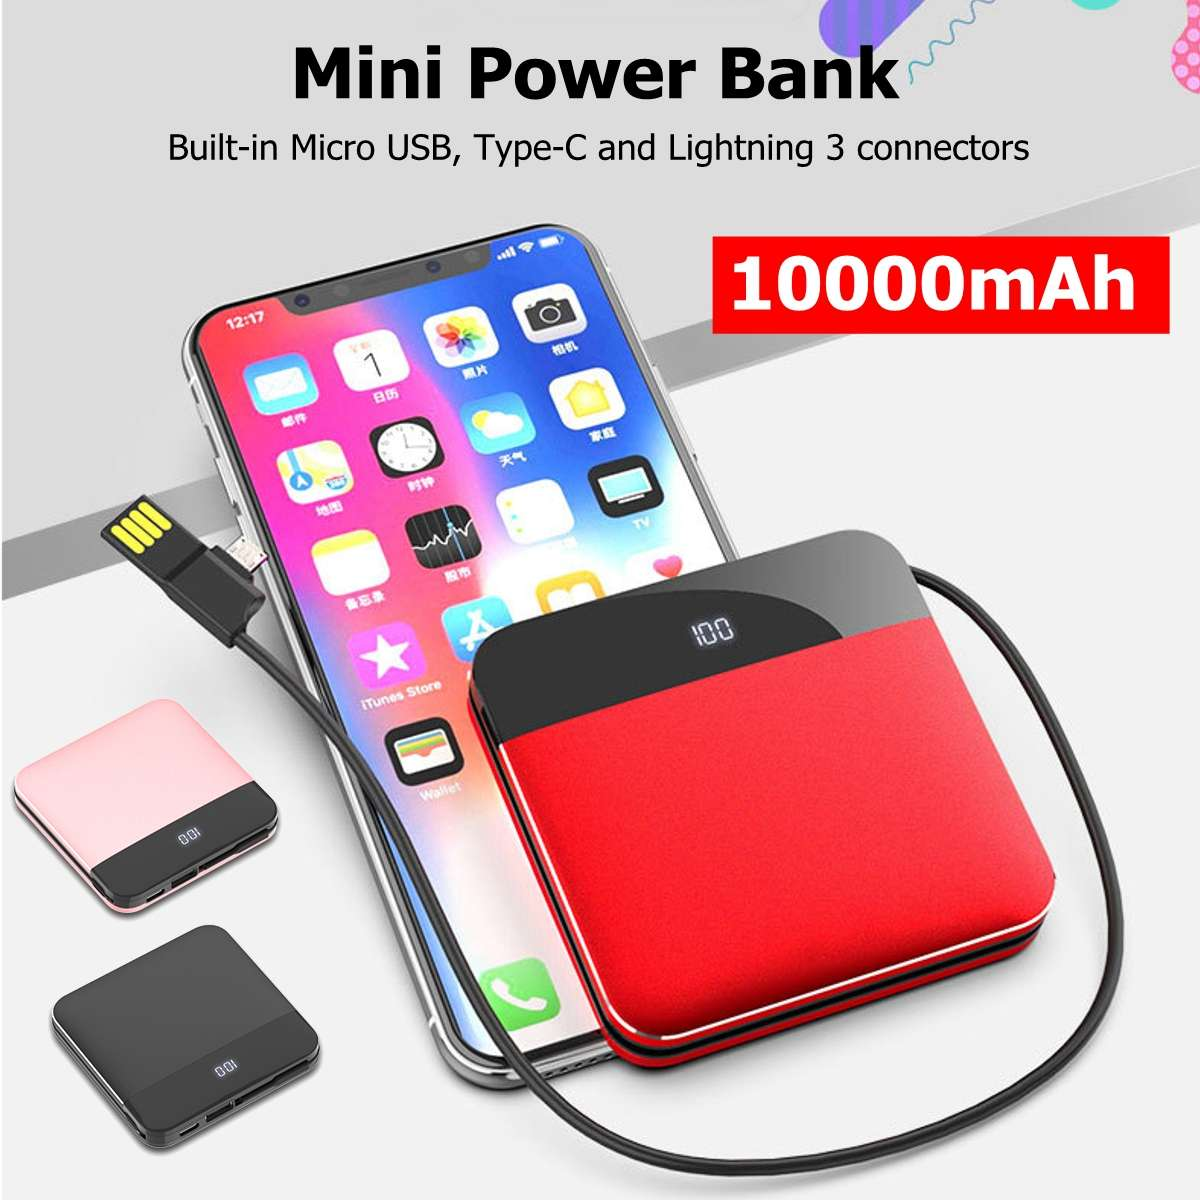 10000mAh Phone Mobile Charger 5V 2.1A Quick Charing 3.0 For